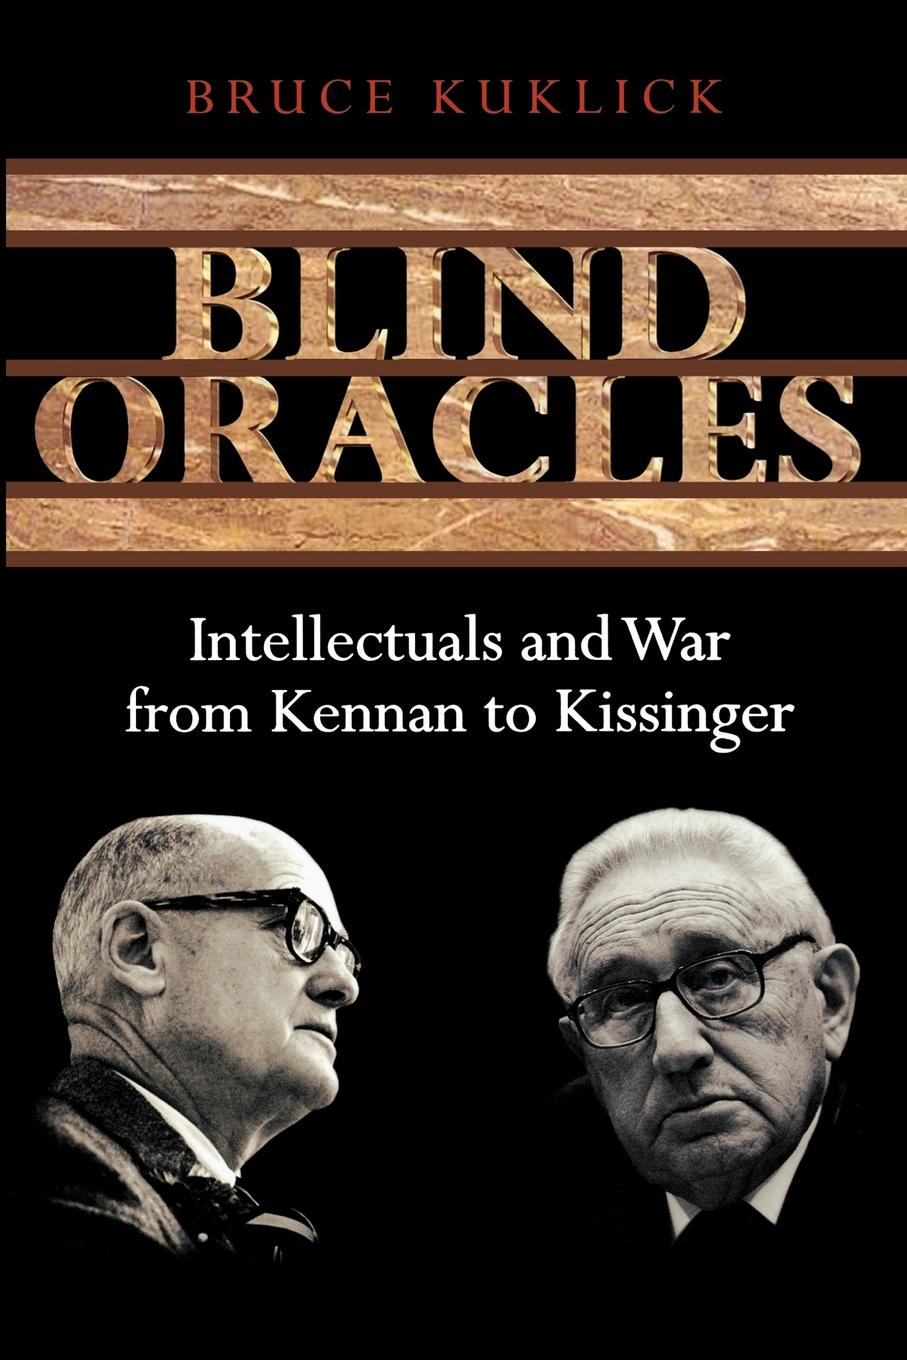 Bruce Kuklick Blind Oracles. Intellectuals and War from Kennan to Kissinger dilan prasad harsha senanayake the influence of the civil war on mahinda rajapaksa s foreign policy in sri lanka during 2005 2015